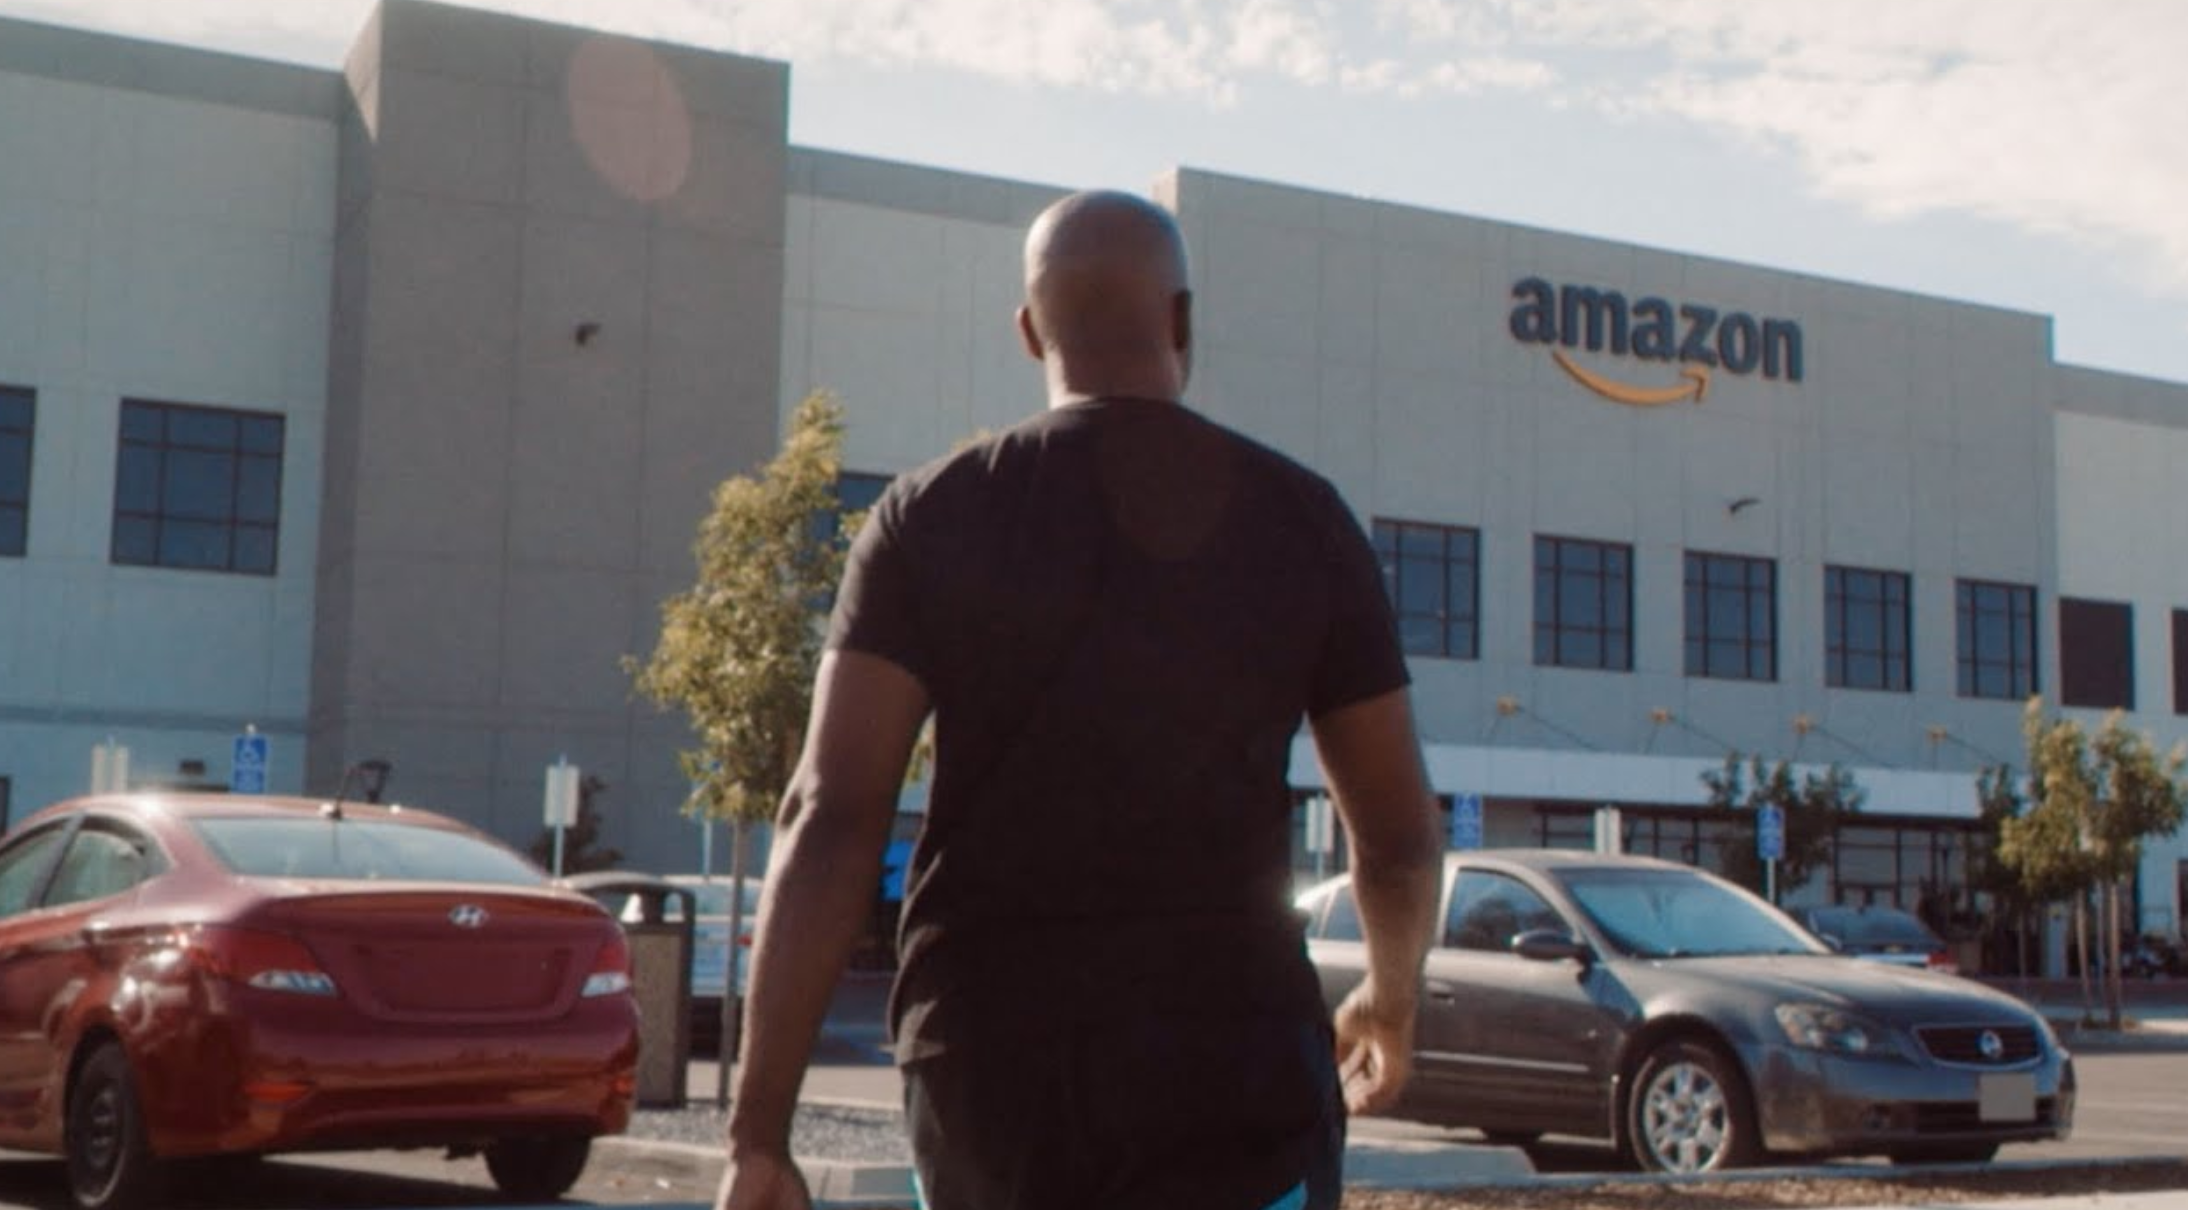 Amazon Thanked Its Workers In This Advert